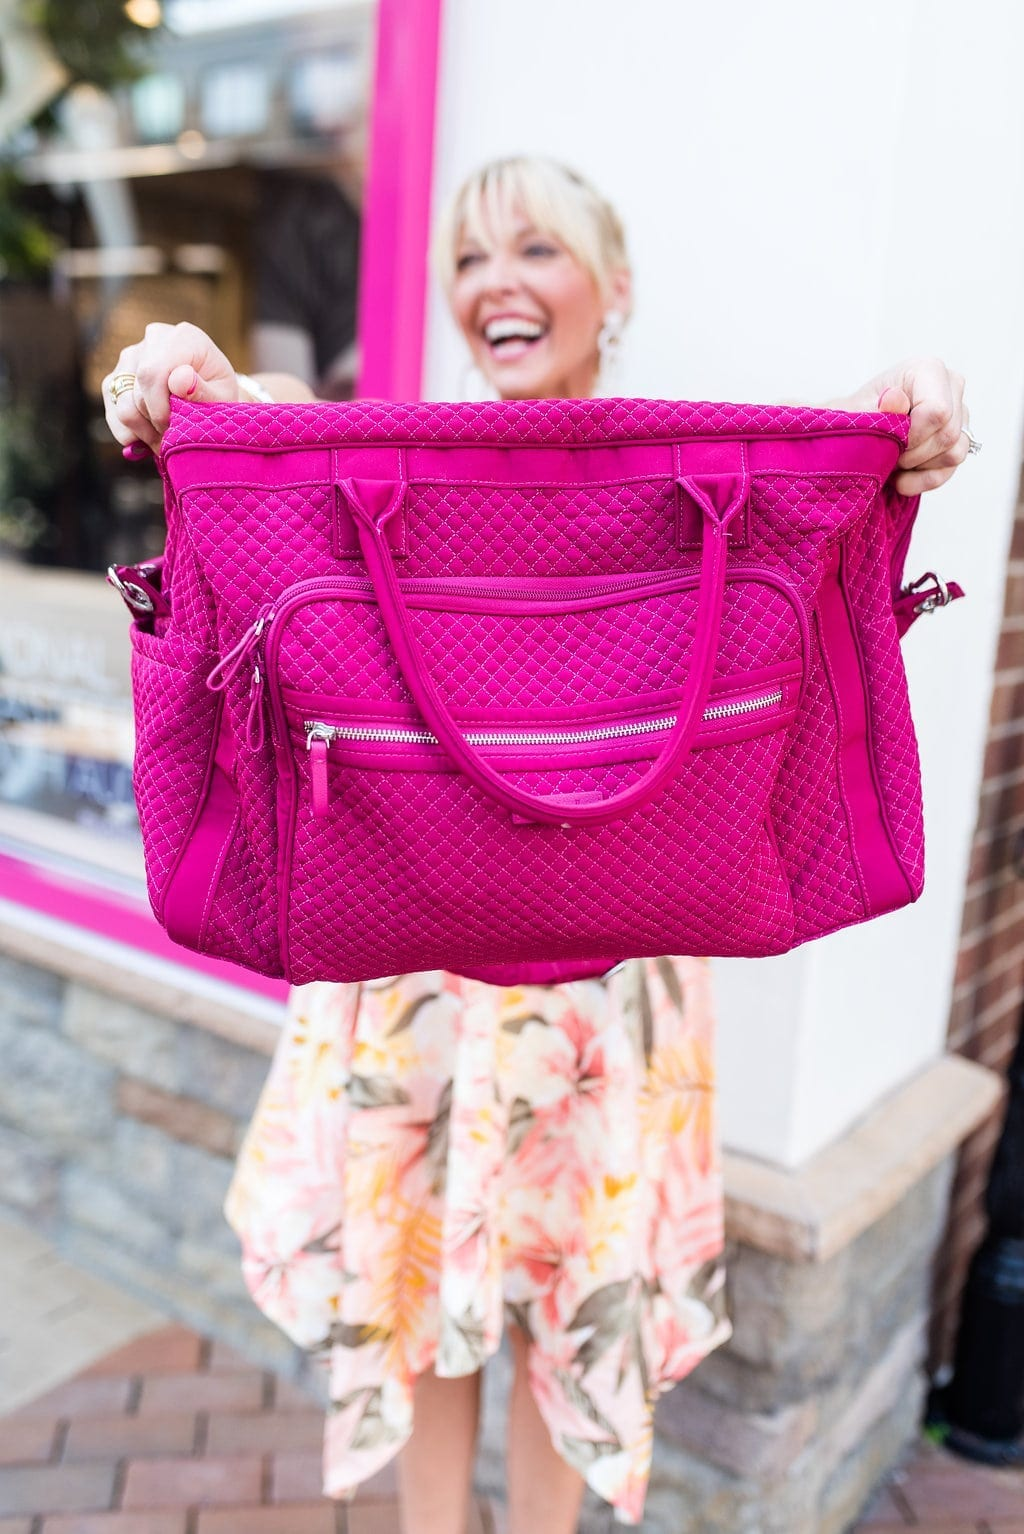 Vera Bradley Weekender Bag in pink with floral midi dress.